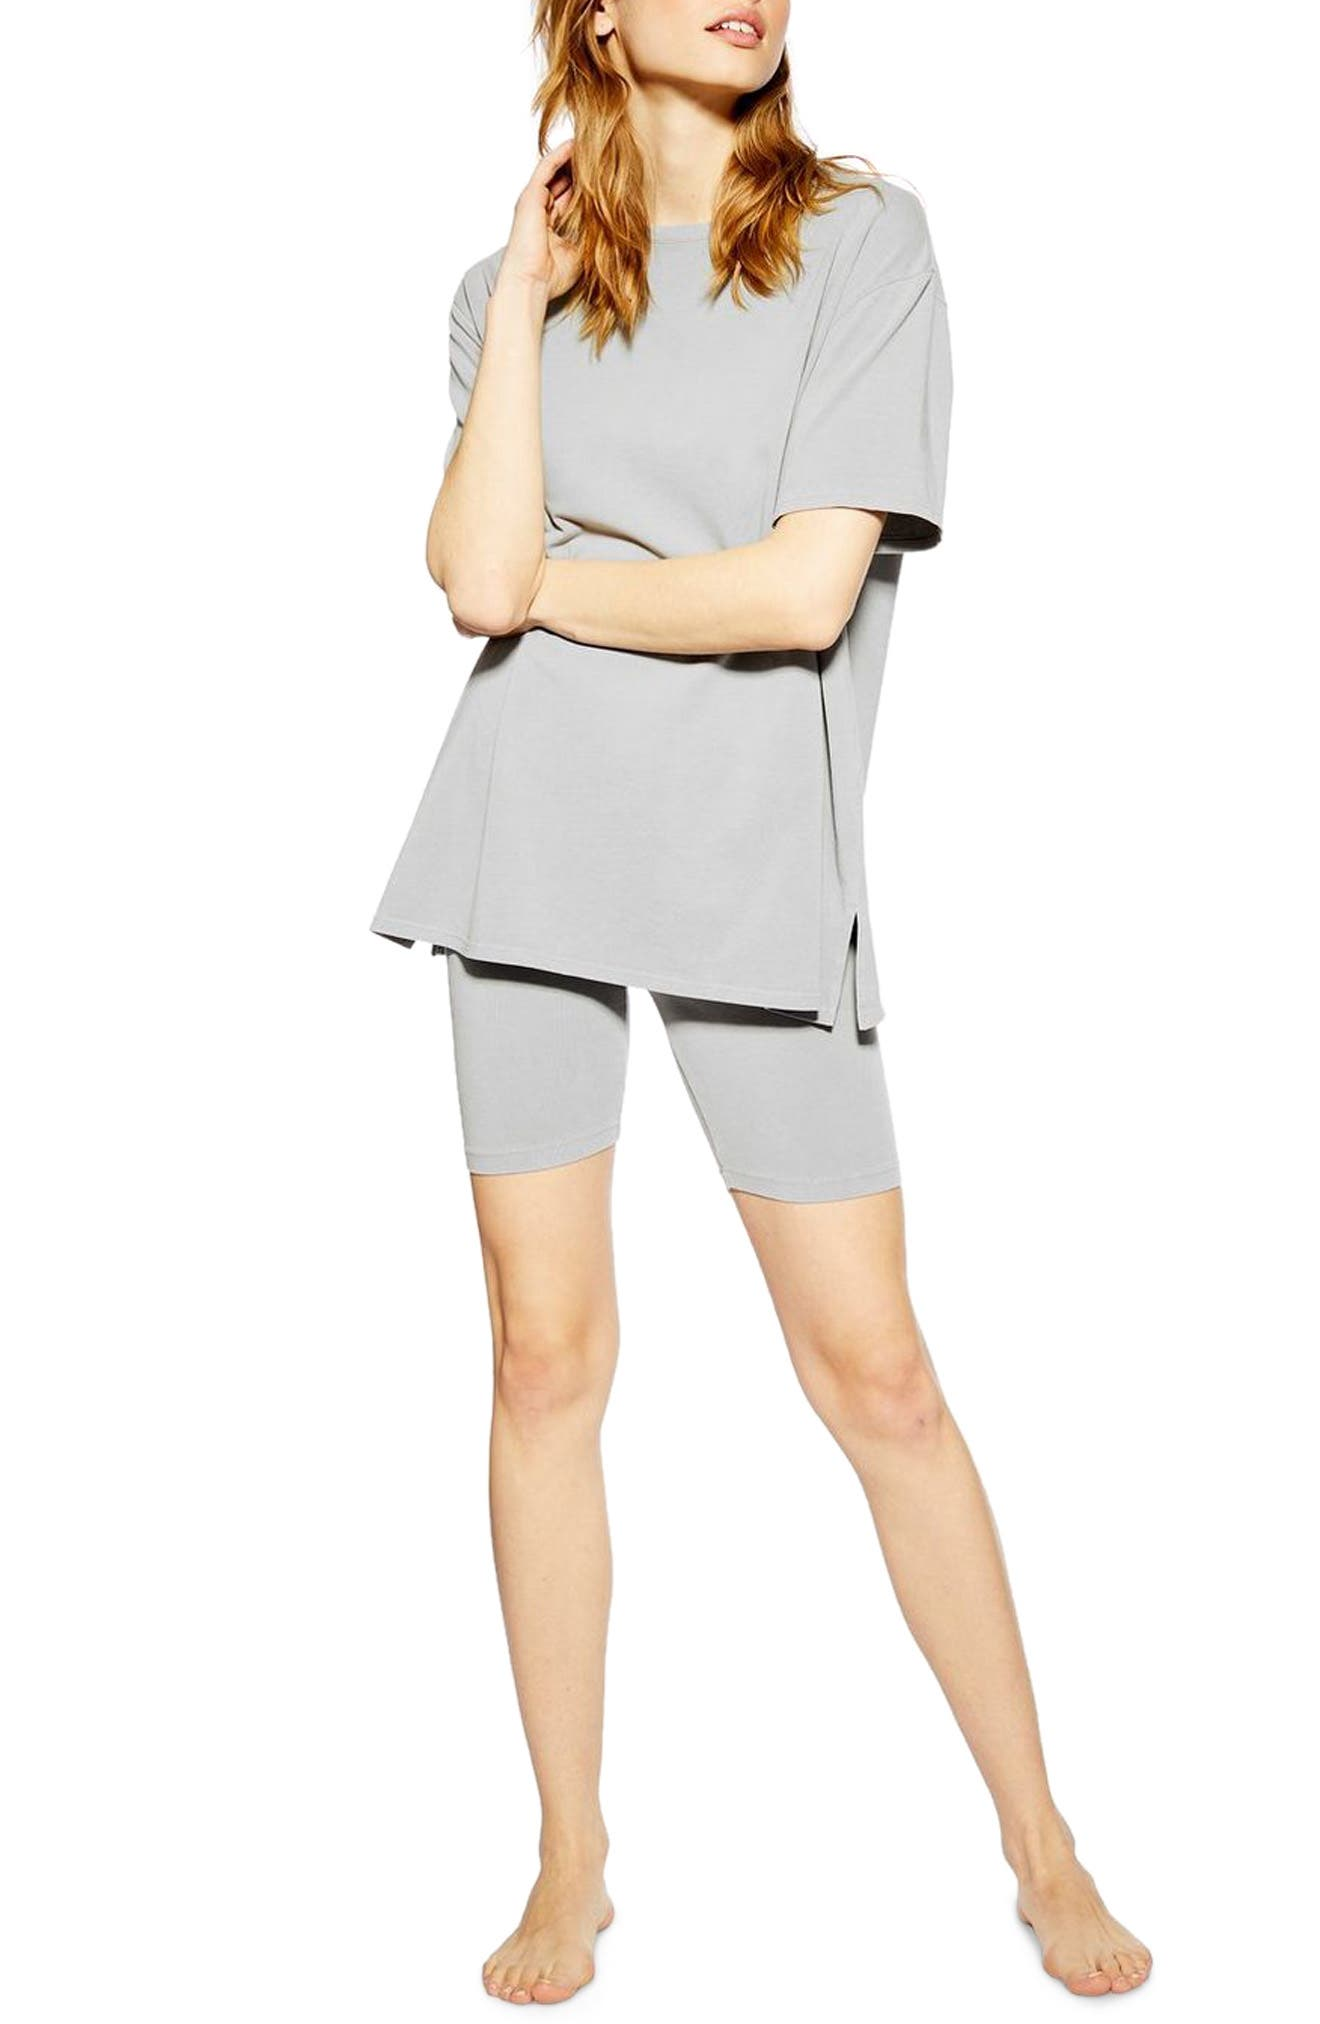 TOPSHOP, Washed Cycle Loungewear Set, Main thumbnail 1, color, STONE